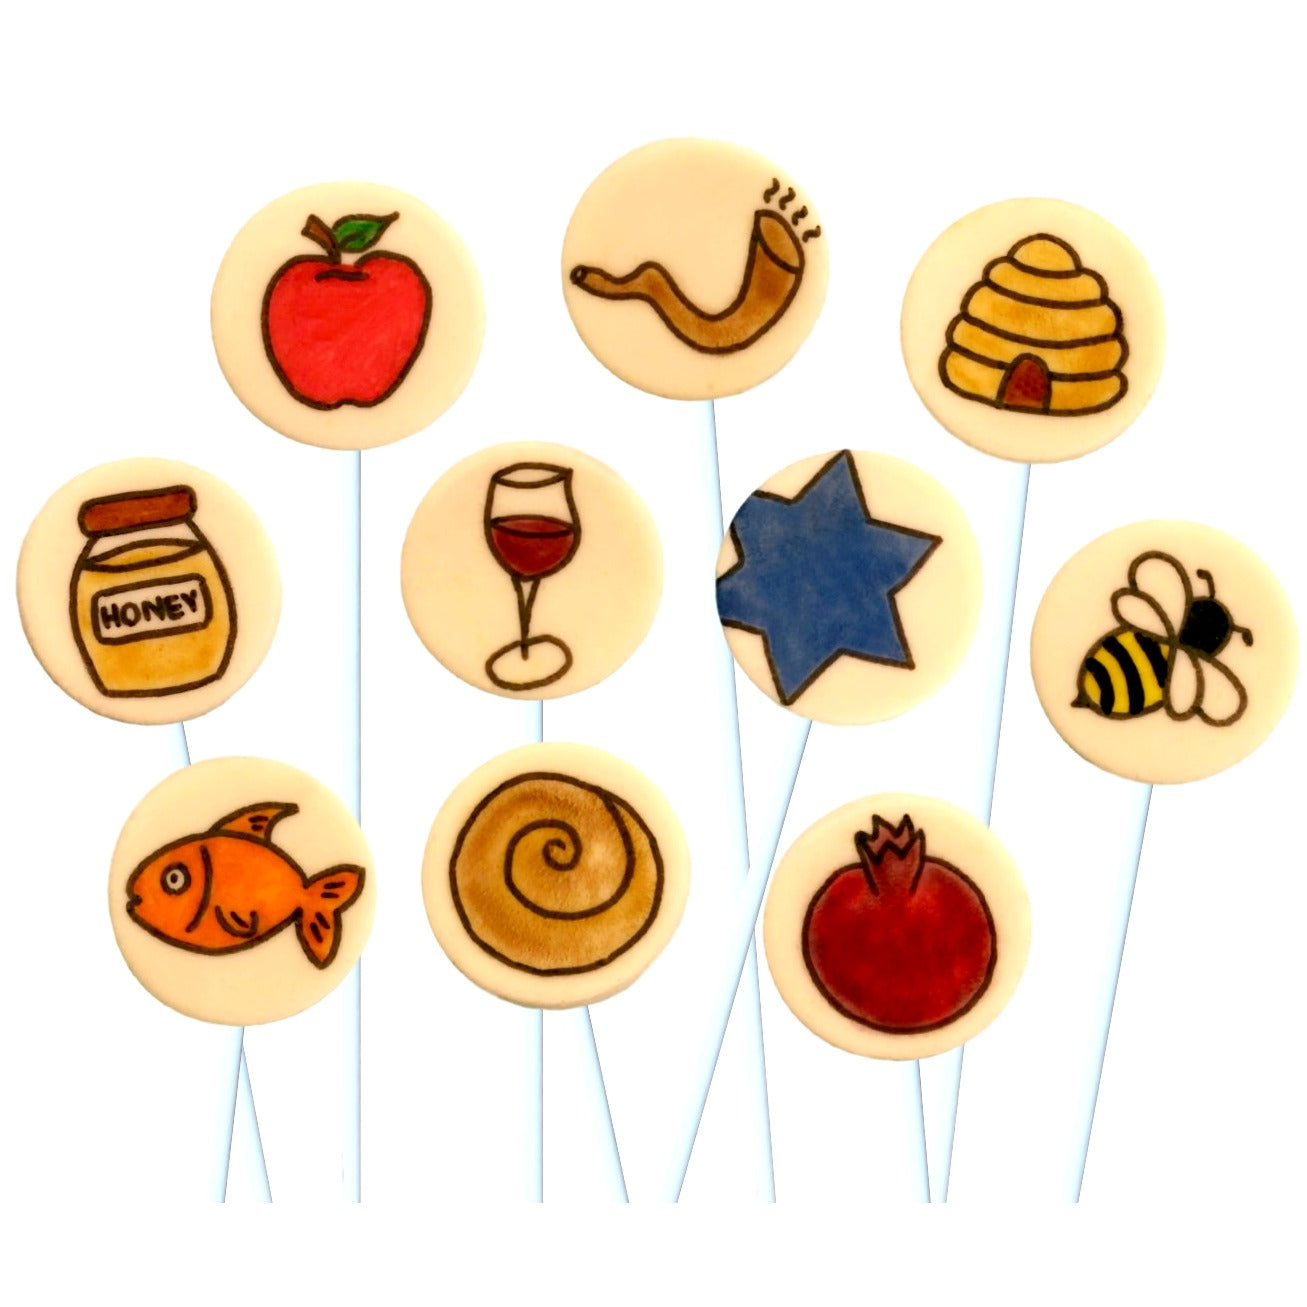 Rosh Hashanah hand-painted symbols with challah, apple, honeypot and pomegranate marzipan candy lollipops